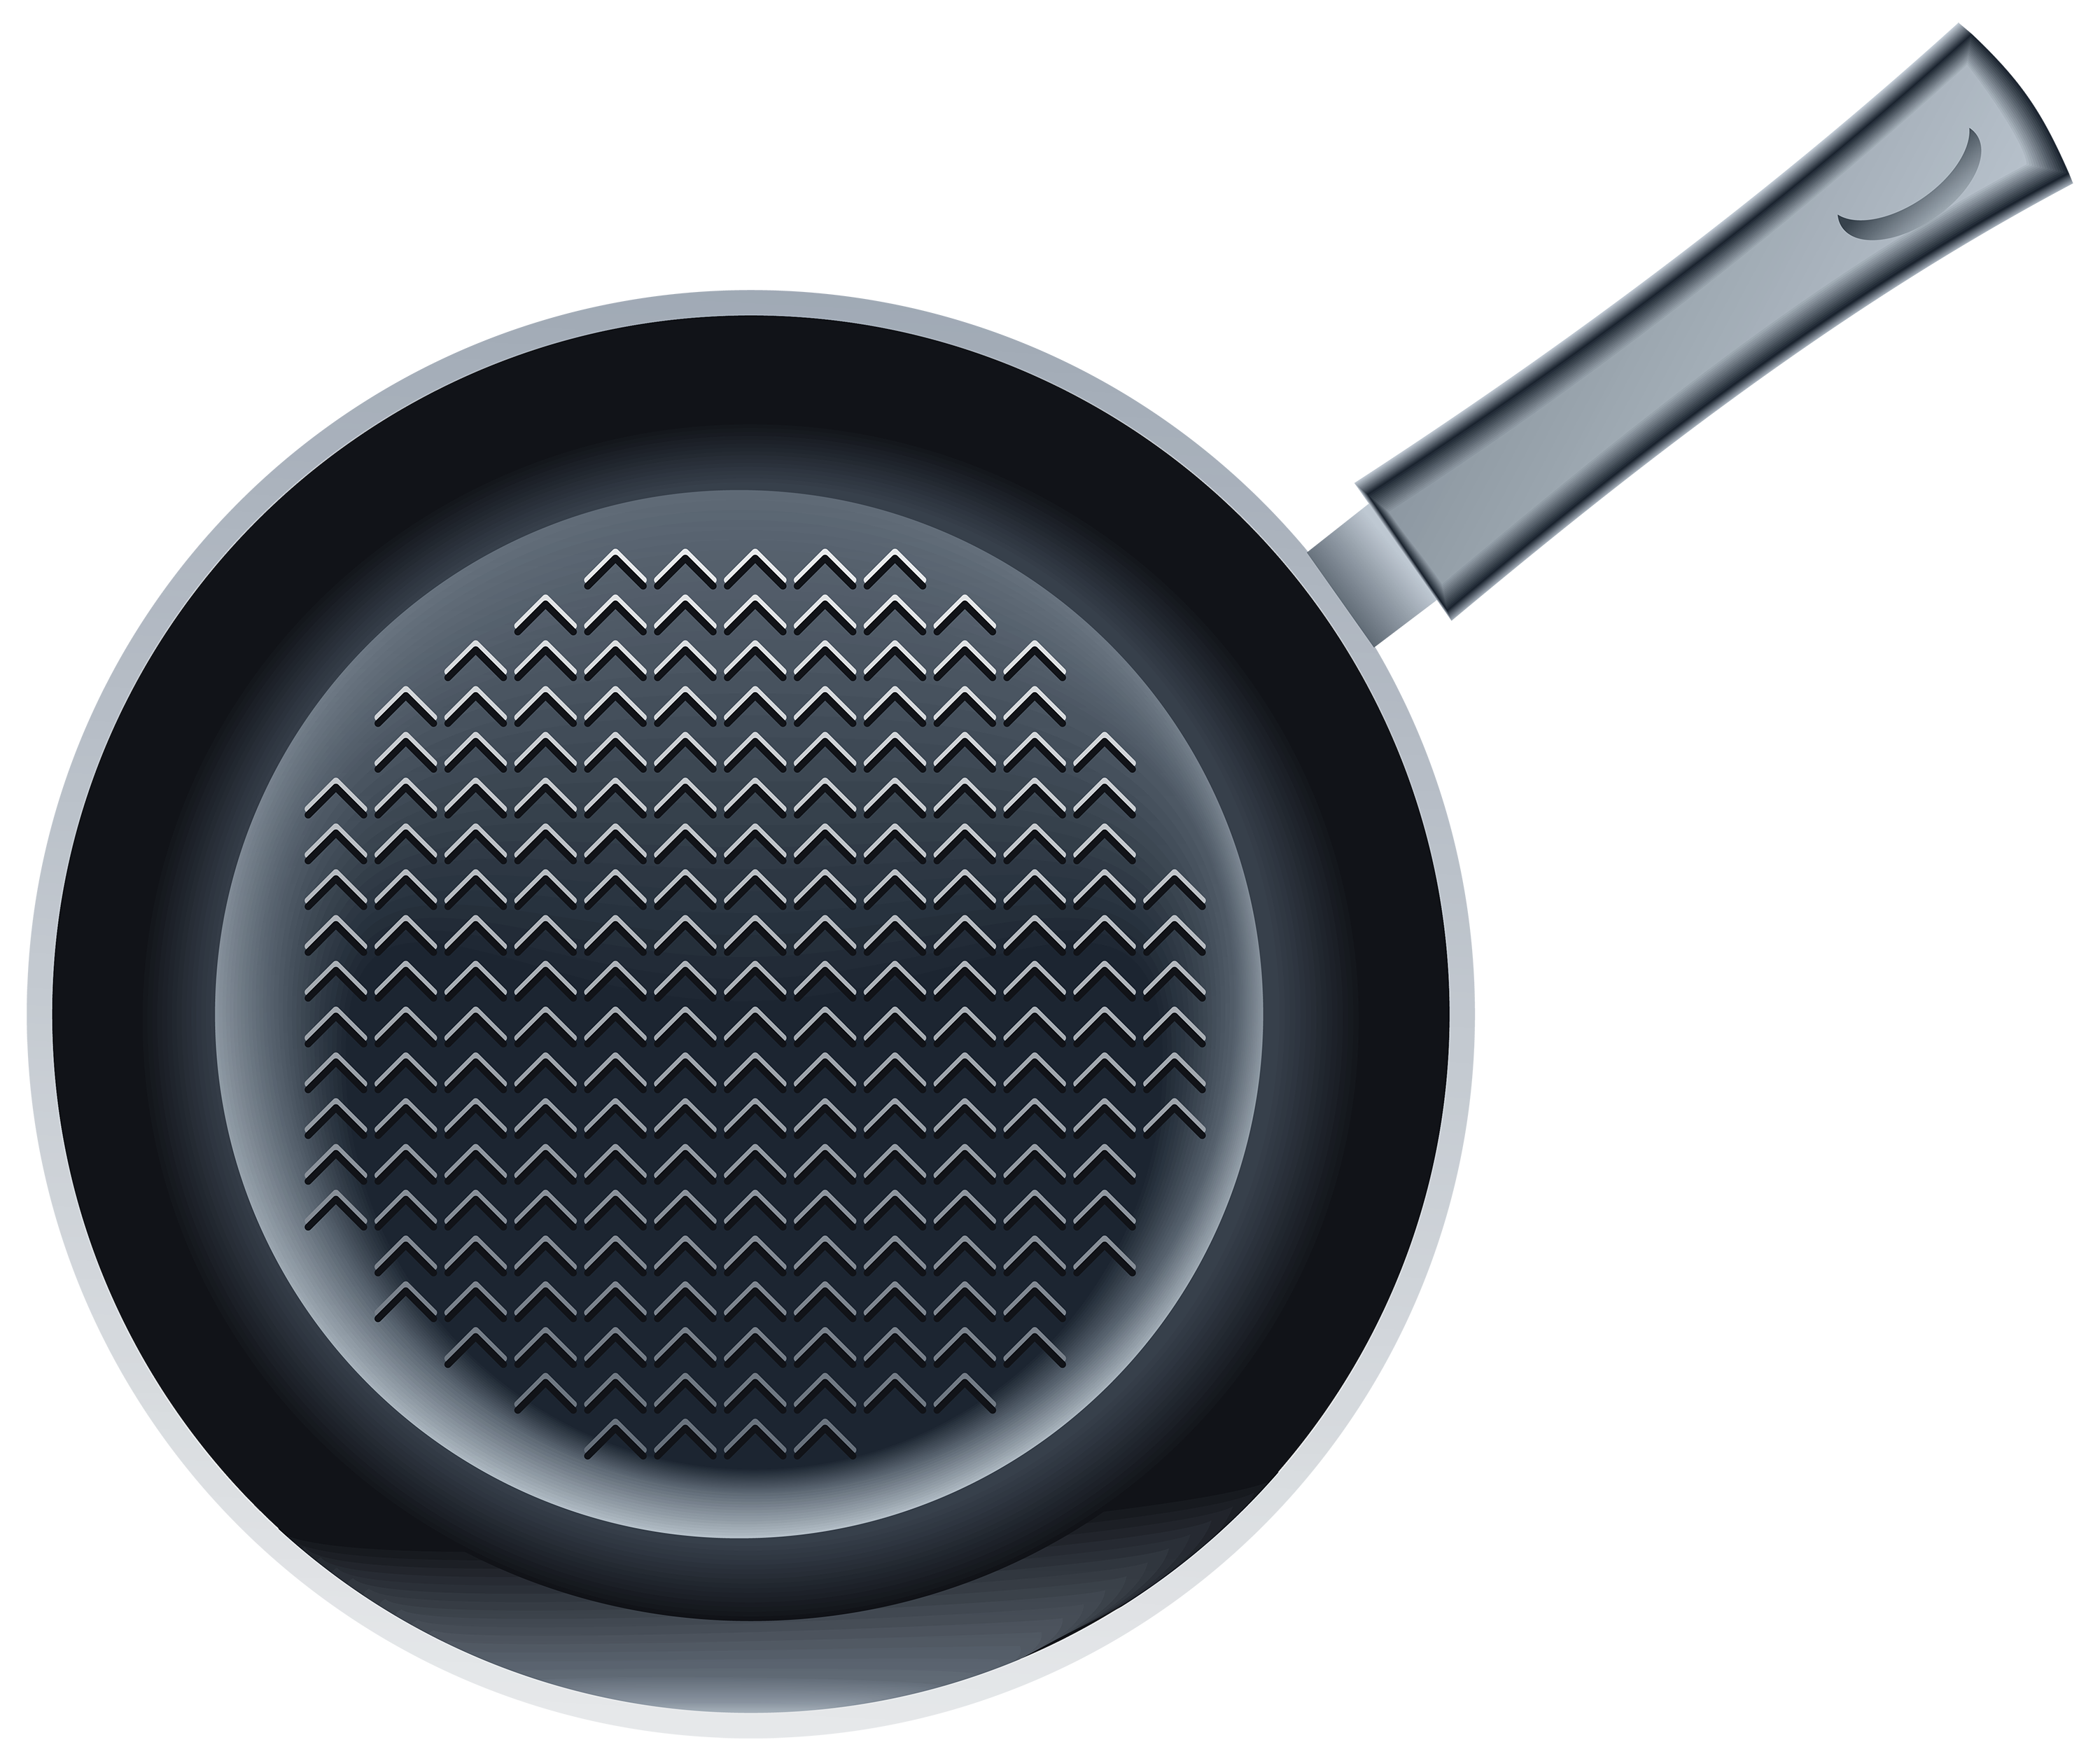 Frying Pan PNG Clipart Image.